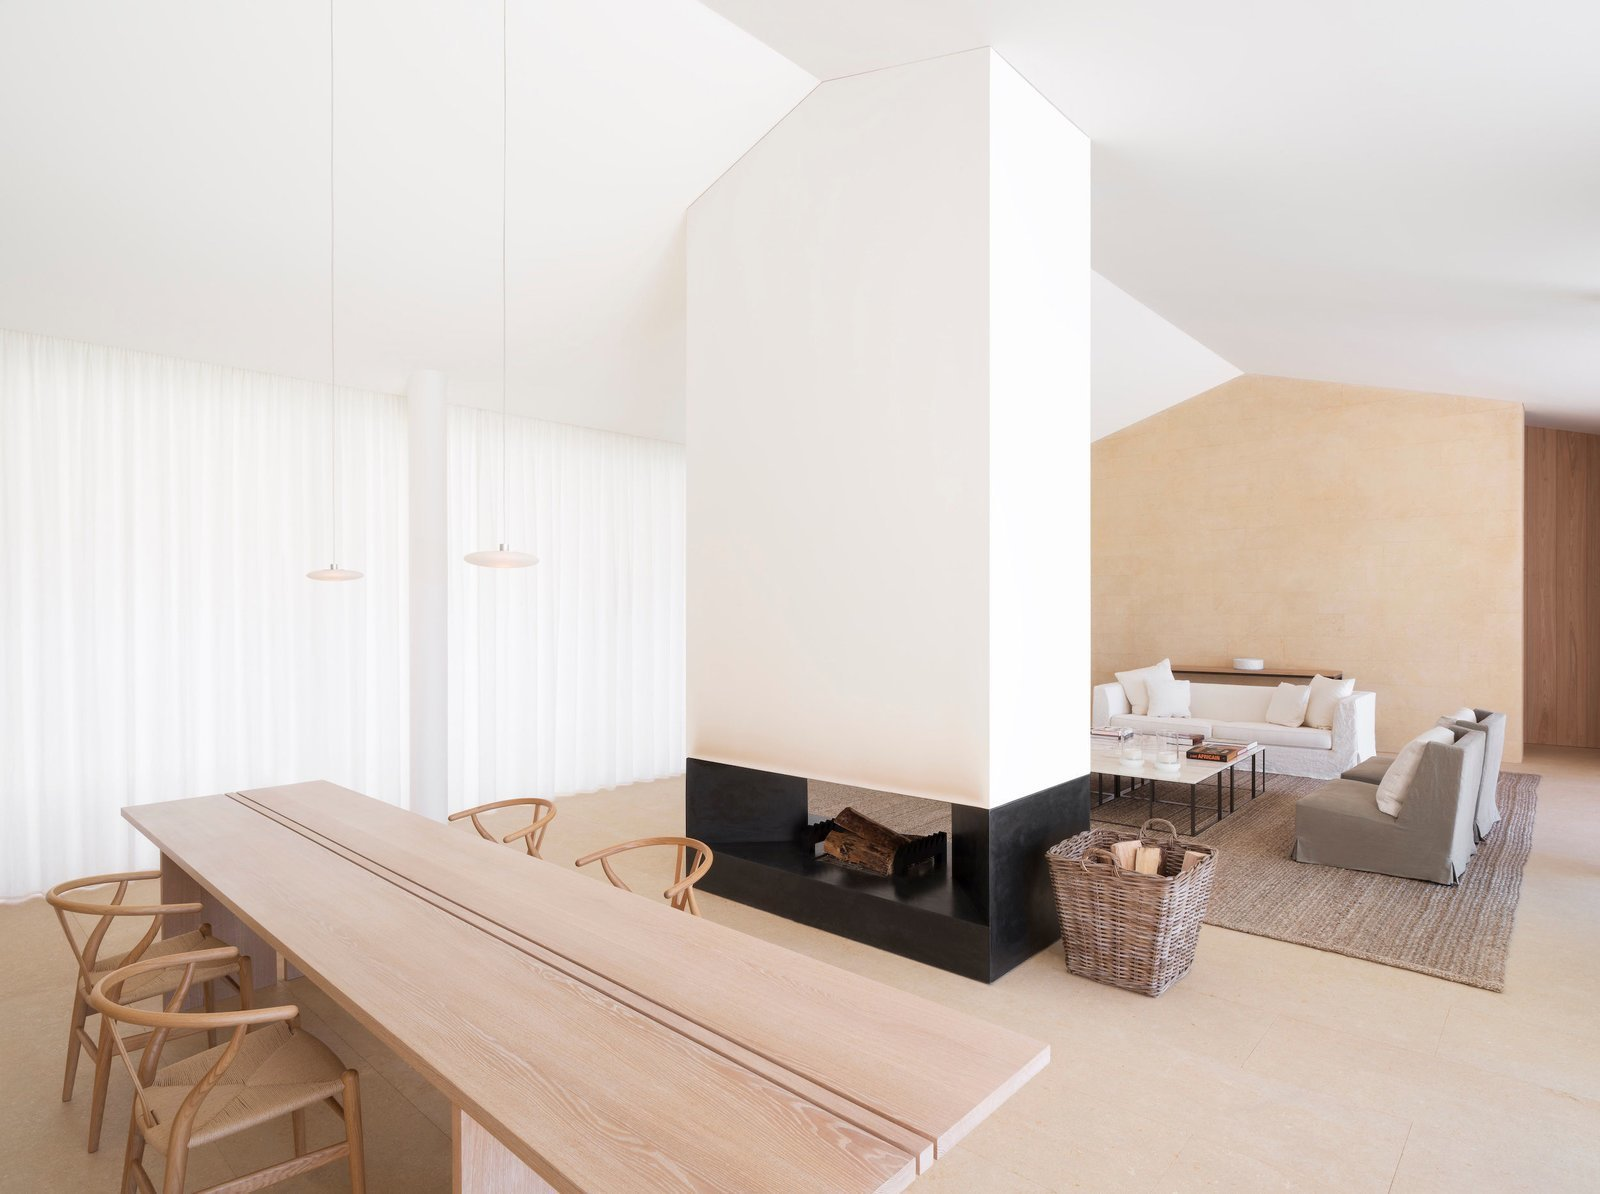 Designed by London architect John Pawson, this home in Saint Tropez has a freestanding fireplace framed by clean lines and bright white walls that acts as the heart a dynamic open-plan living room.  Photo 3 of 10 in 10 Modern Fireplaces That Make For Inviting Interiors